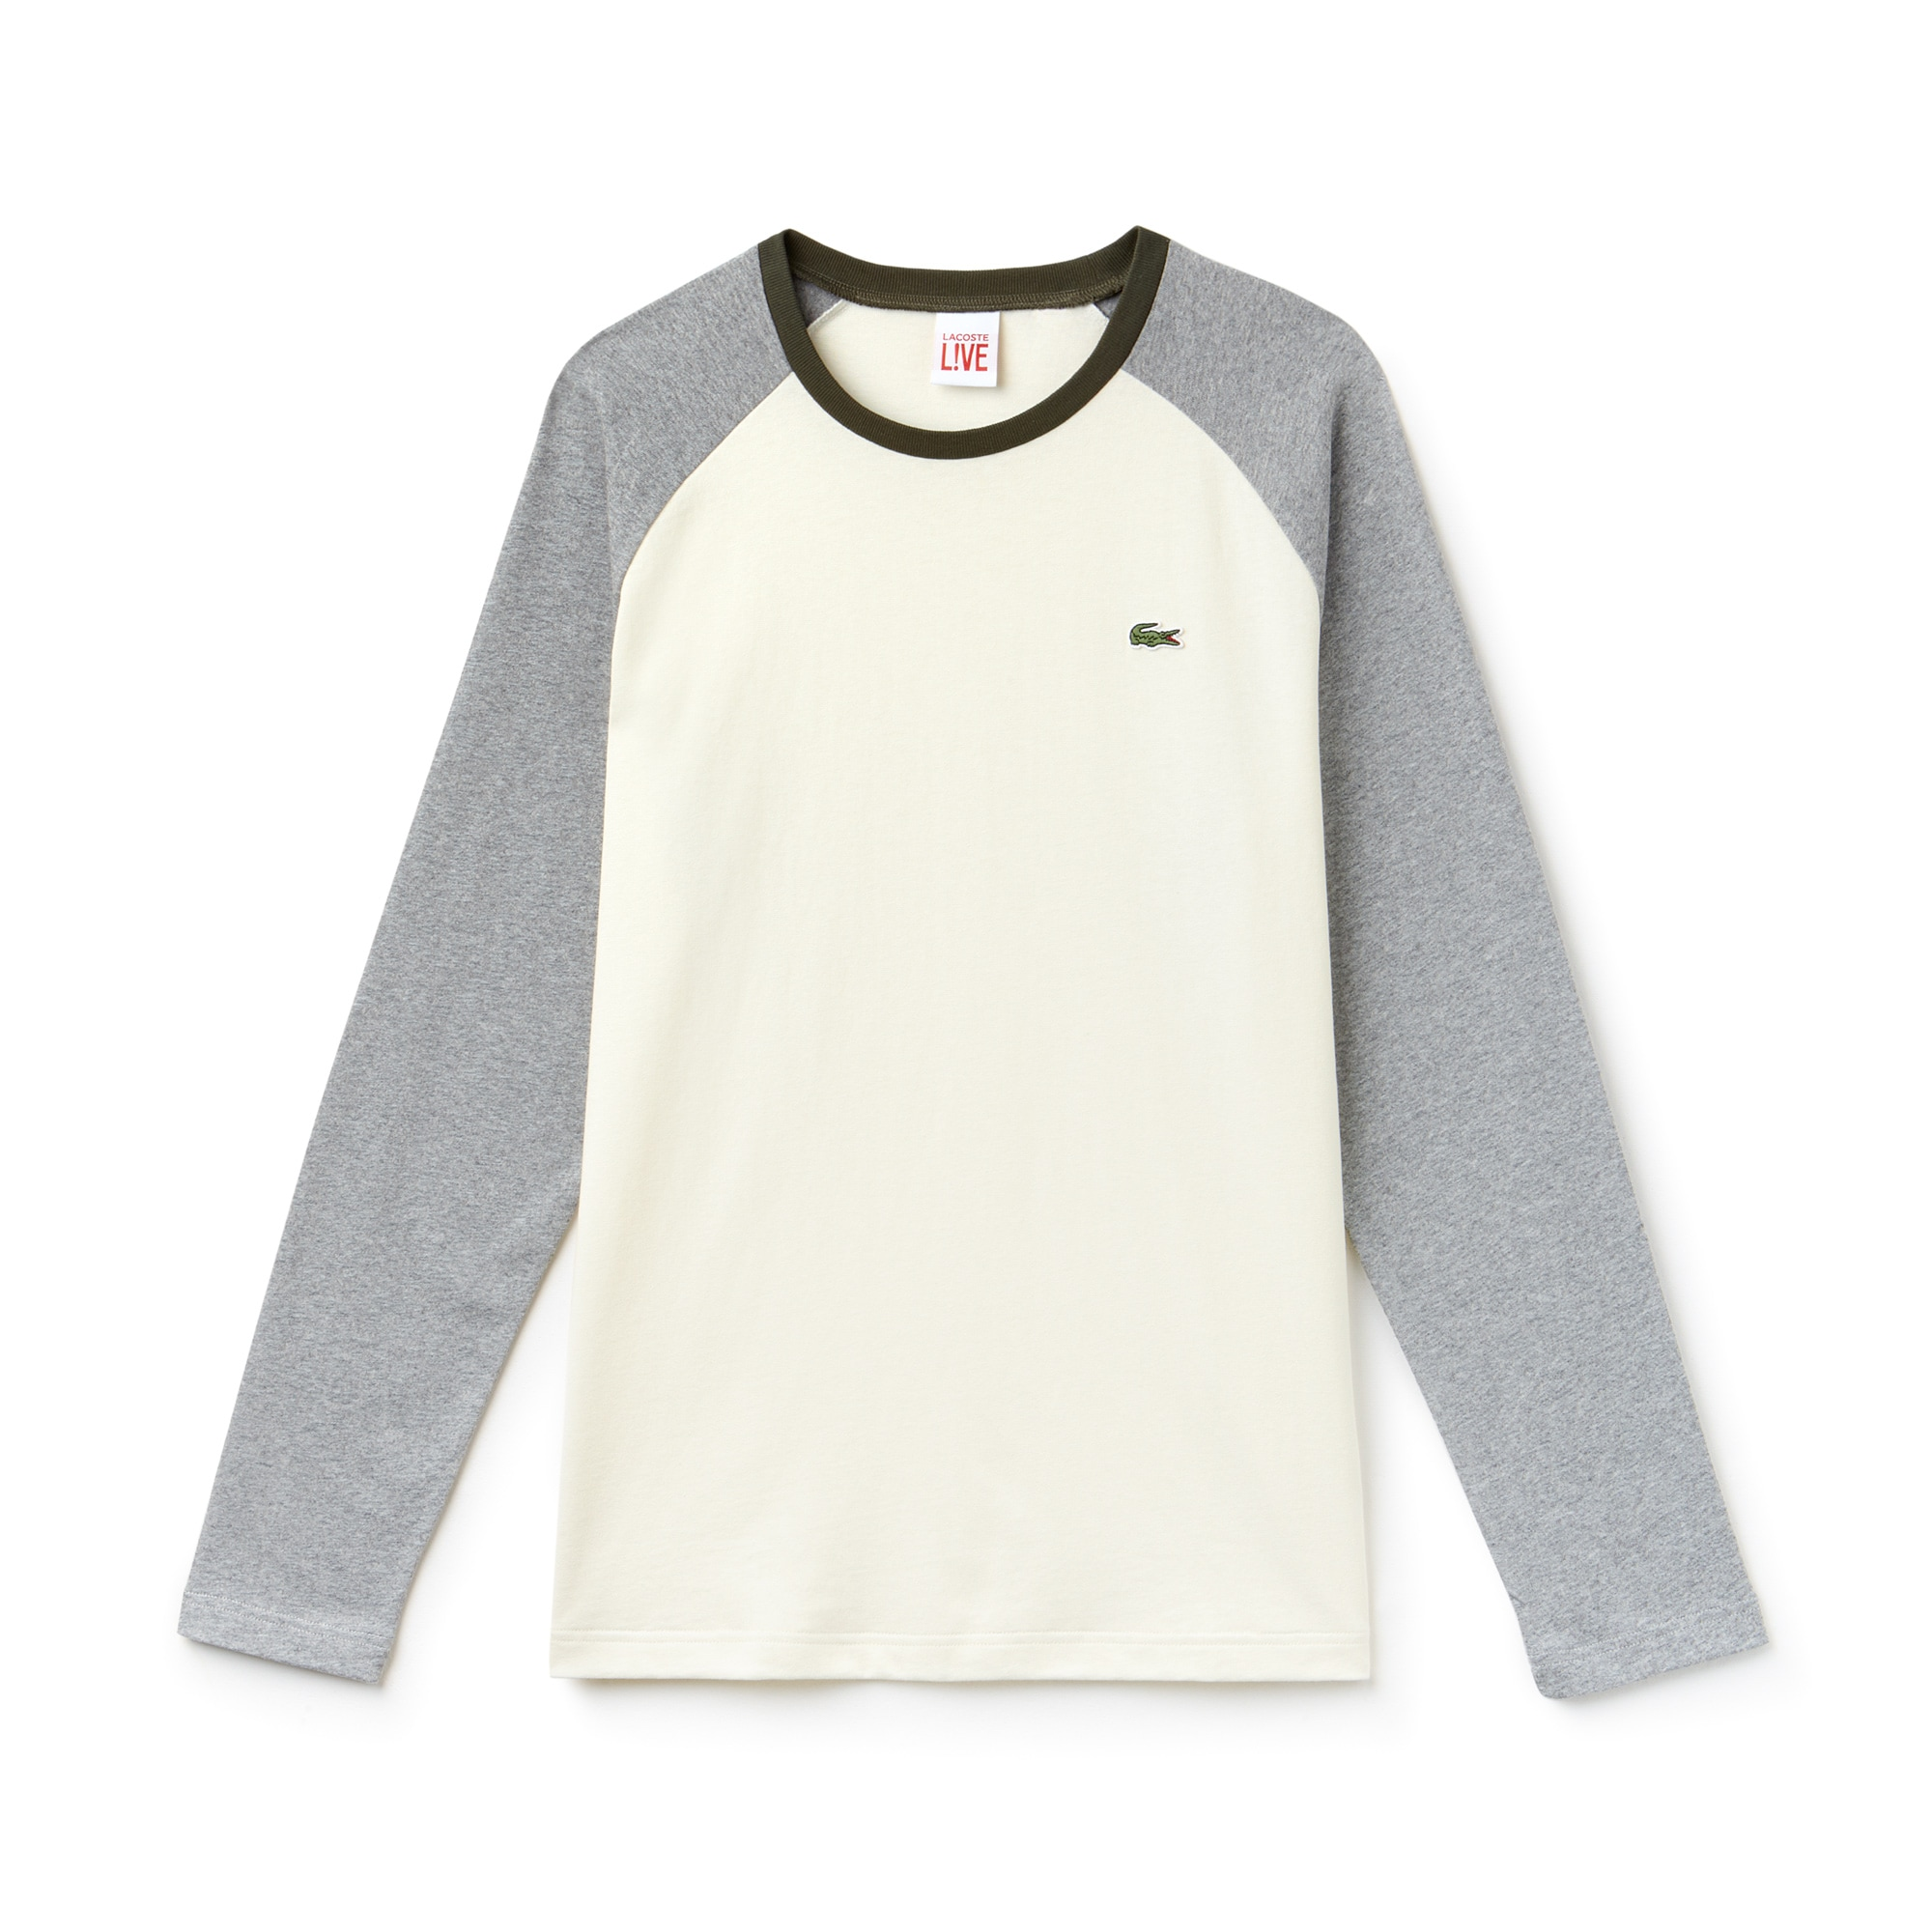 T-shirt a maniche lunghe Lacoste LIVE in jersey bicolore